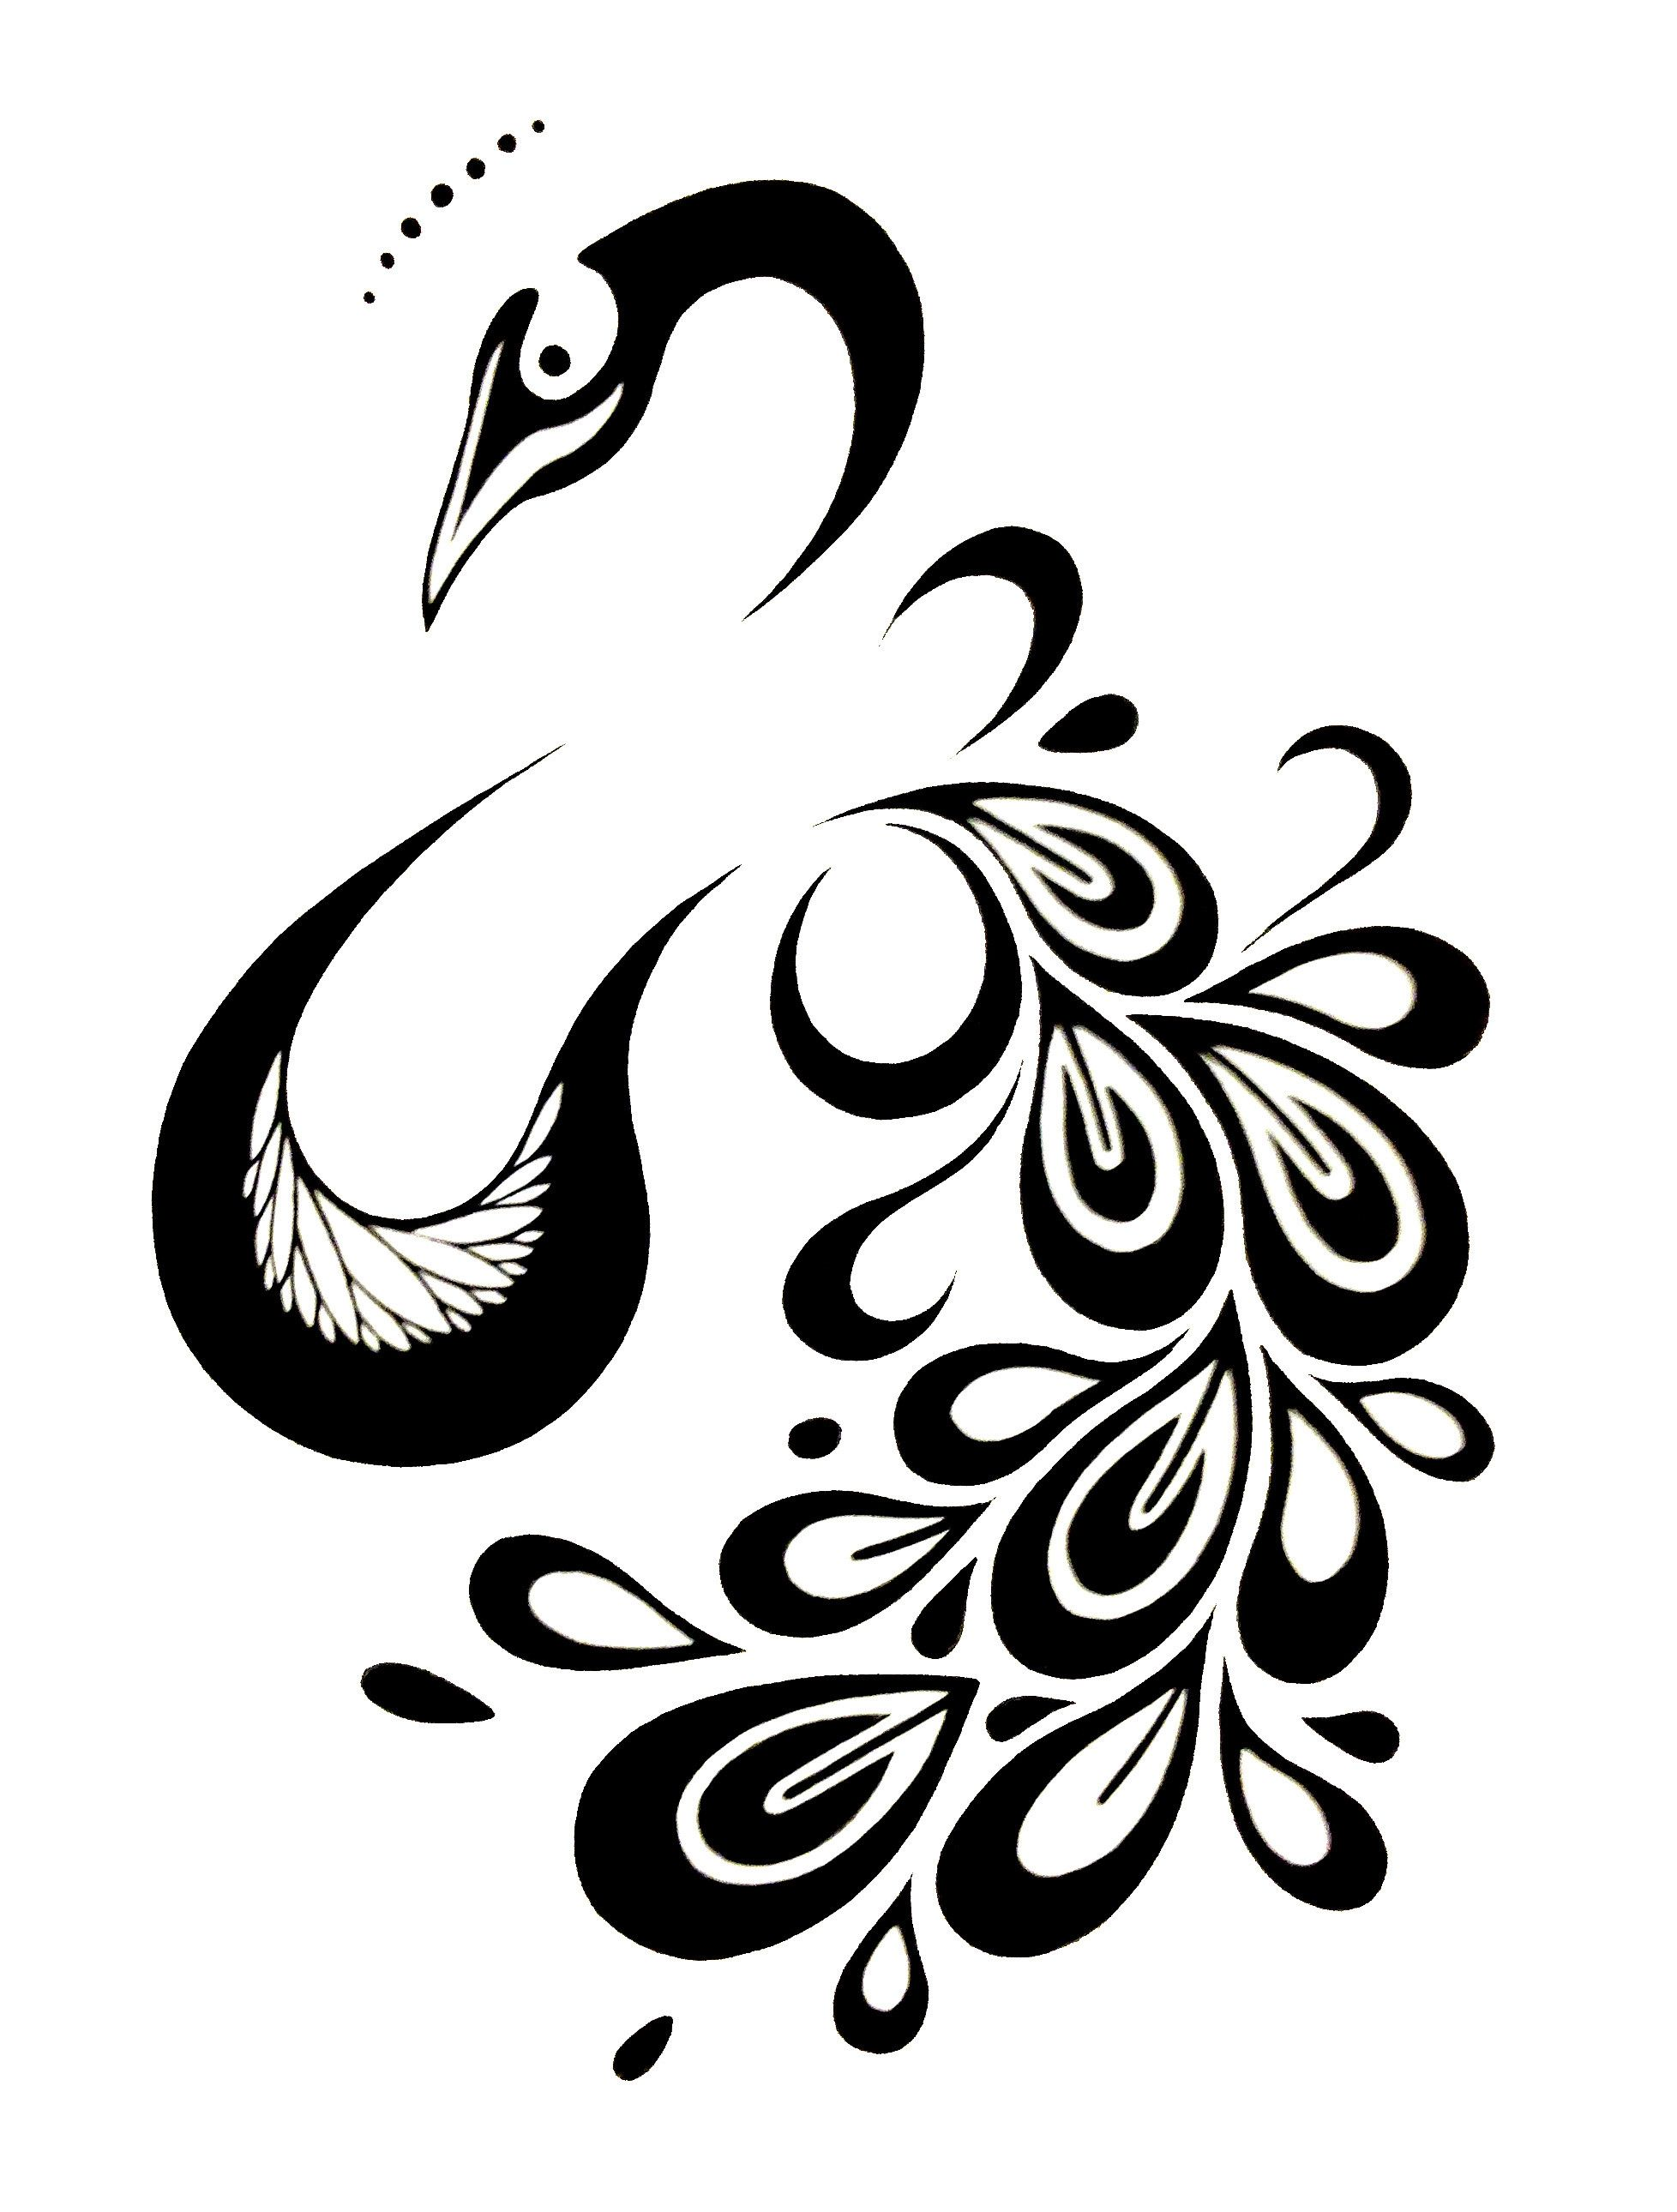 Image result for peacock tattoo black and white | Peacock ...  |Peacock Tattoo Black And White